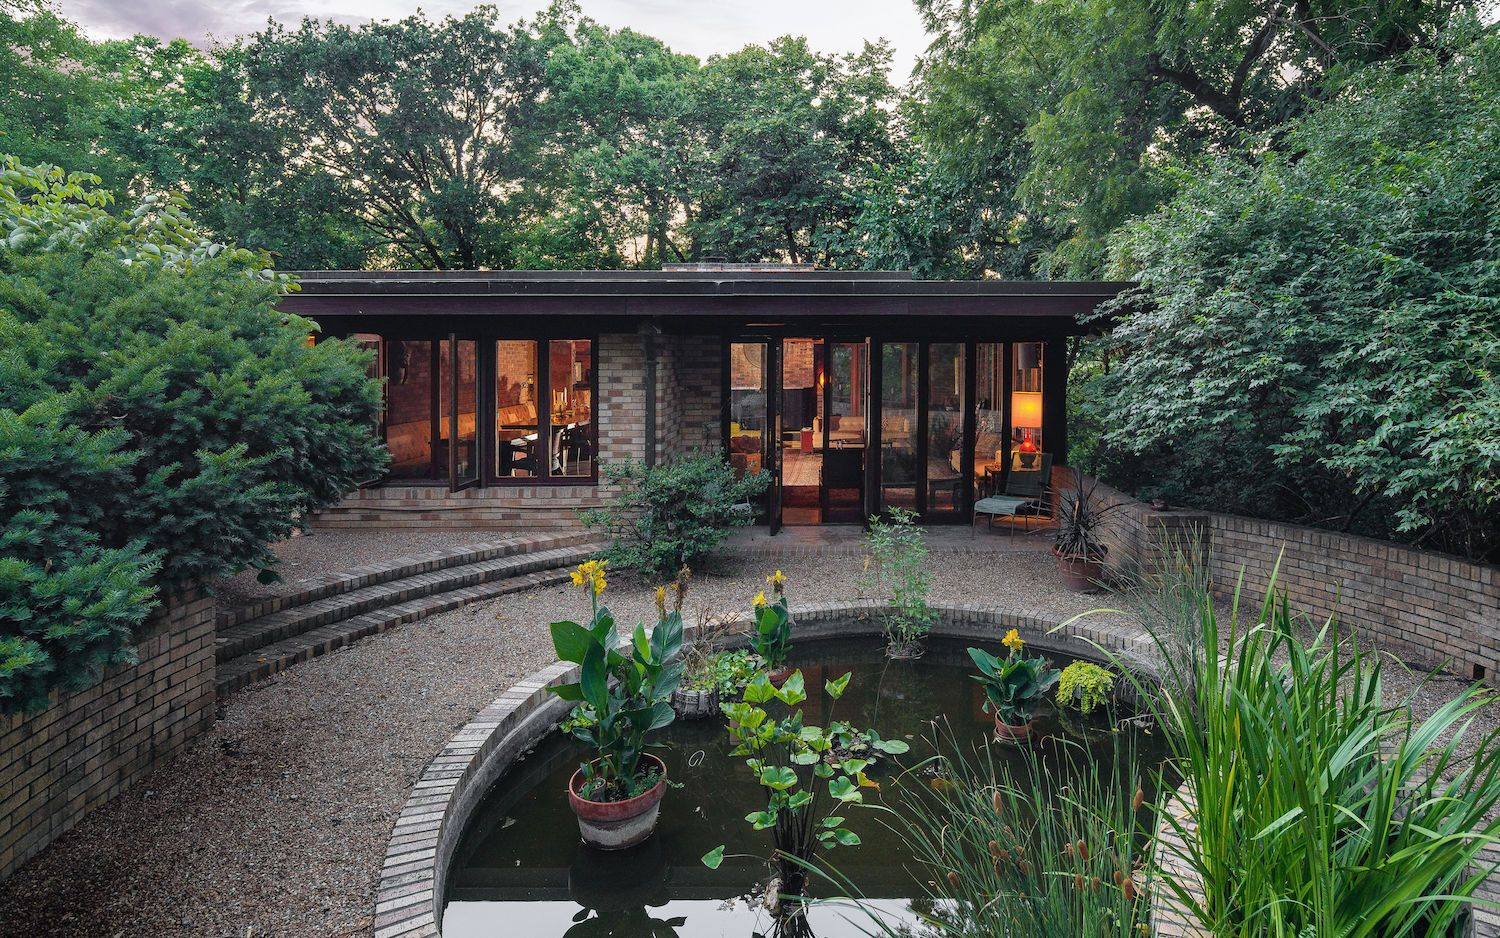 Now's Your Chance to Own A Kansas City Home That Frank Lloyd Wright Designed Not Once, but Twice